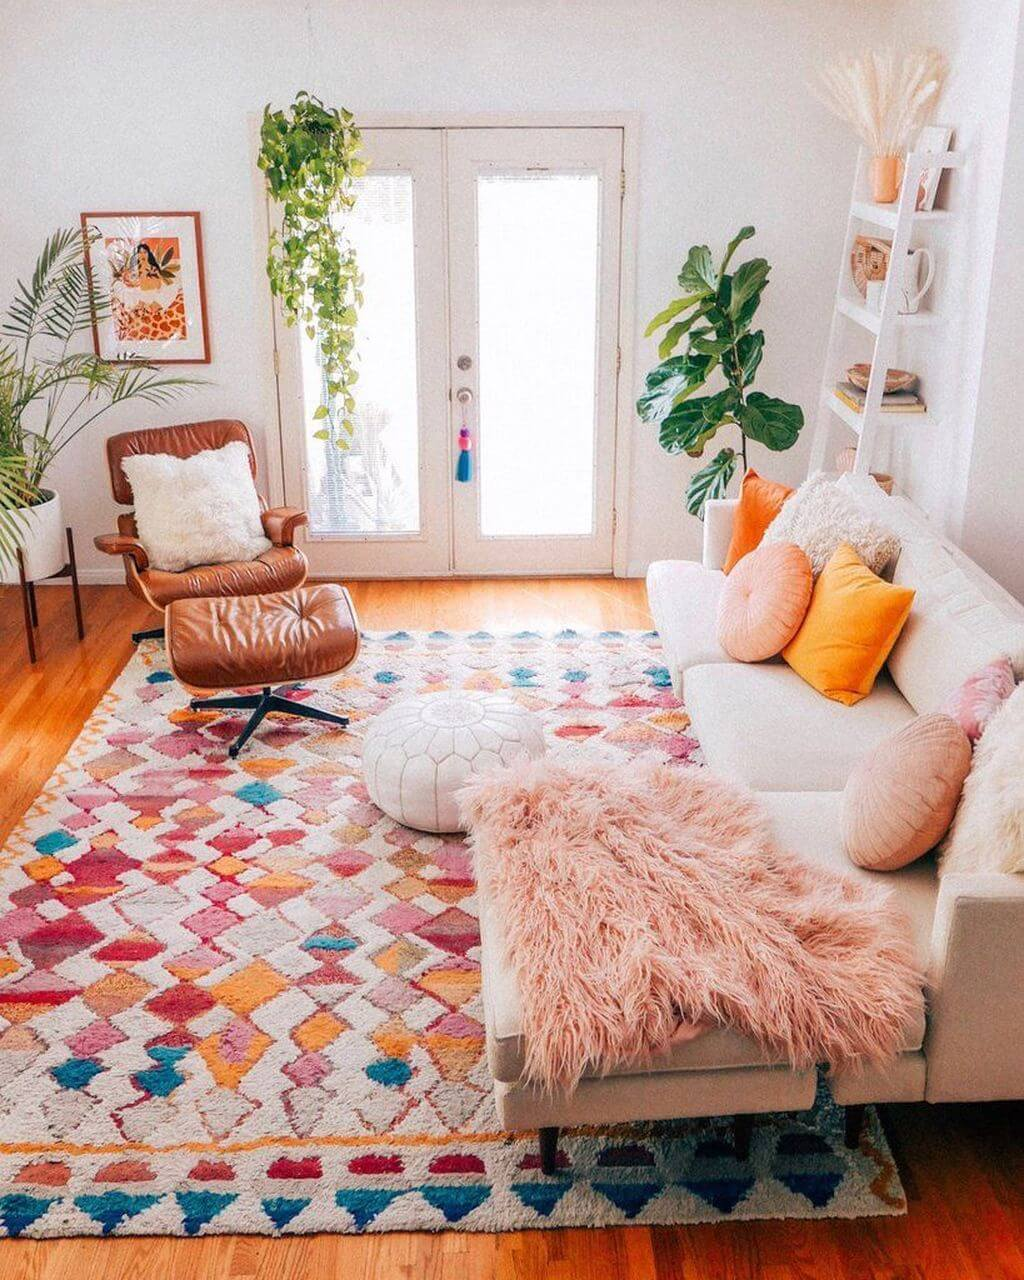 Picture Perfect Boho Room Décor